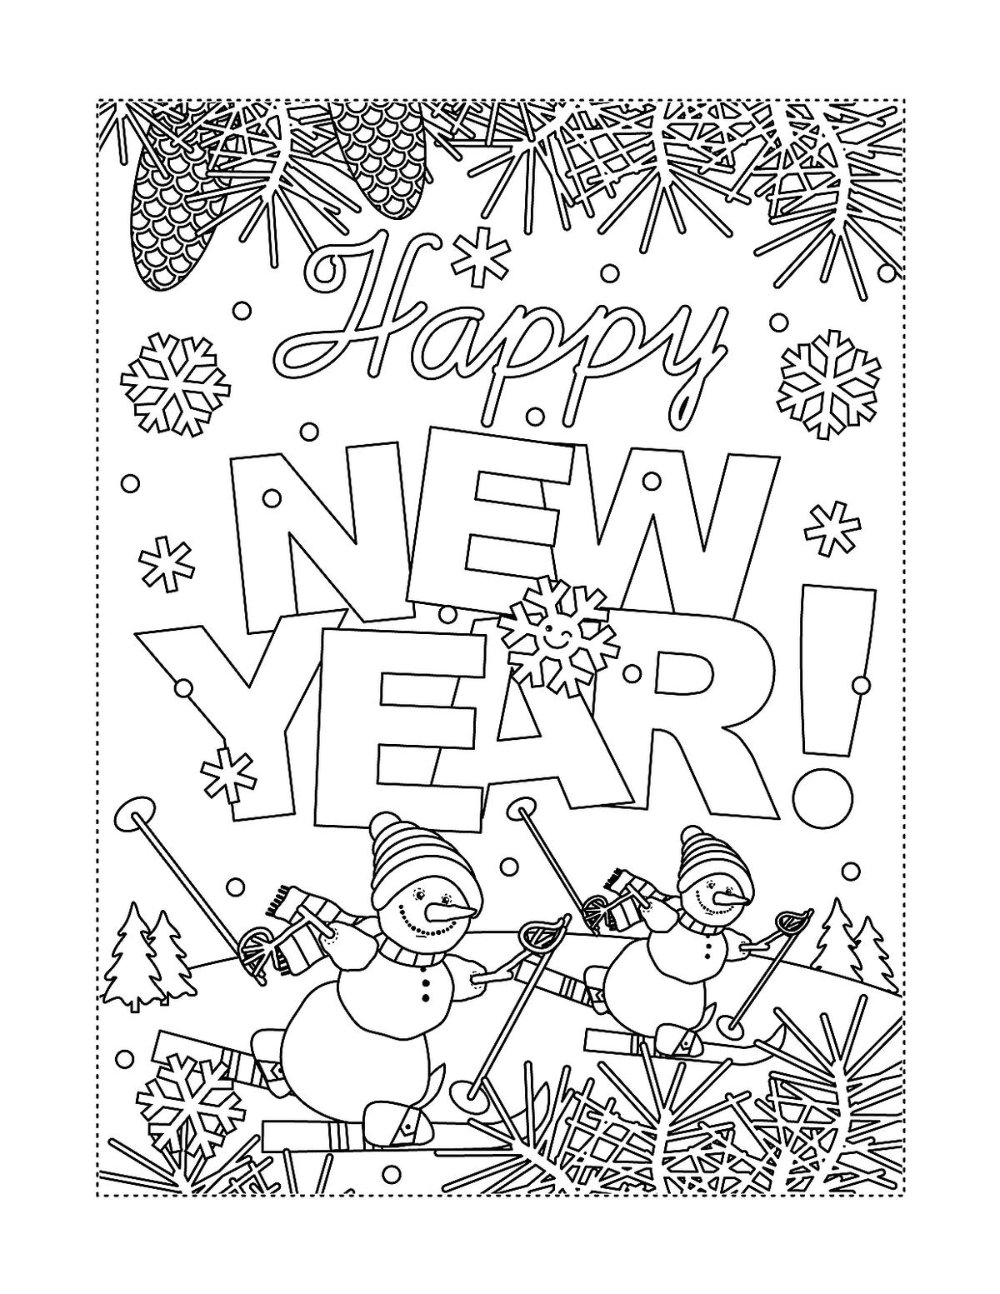 New Year January Coloring Pages Printable Fun To Help Kids Welcome 2020 Printables 30seconds Mom In 2020 Kindergarten Coloring Pages New Year Coloring Pages Printable Coloring Pages